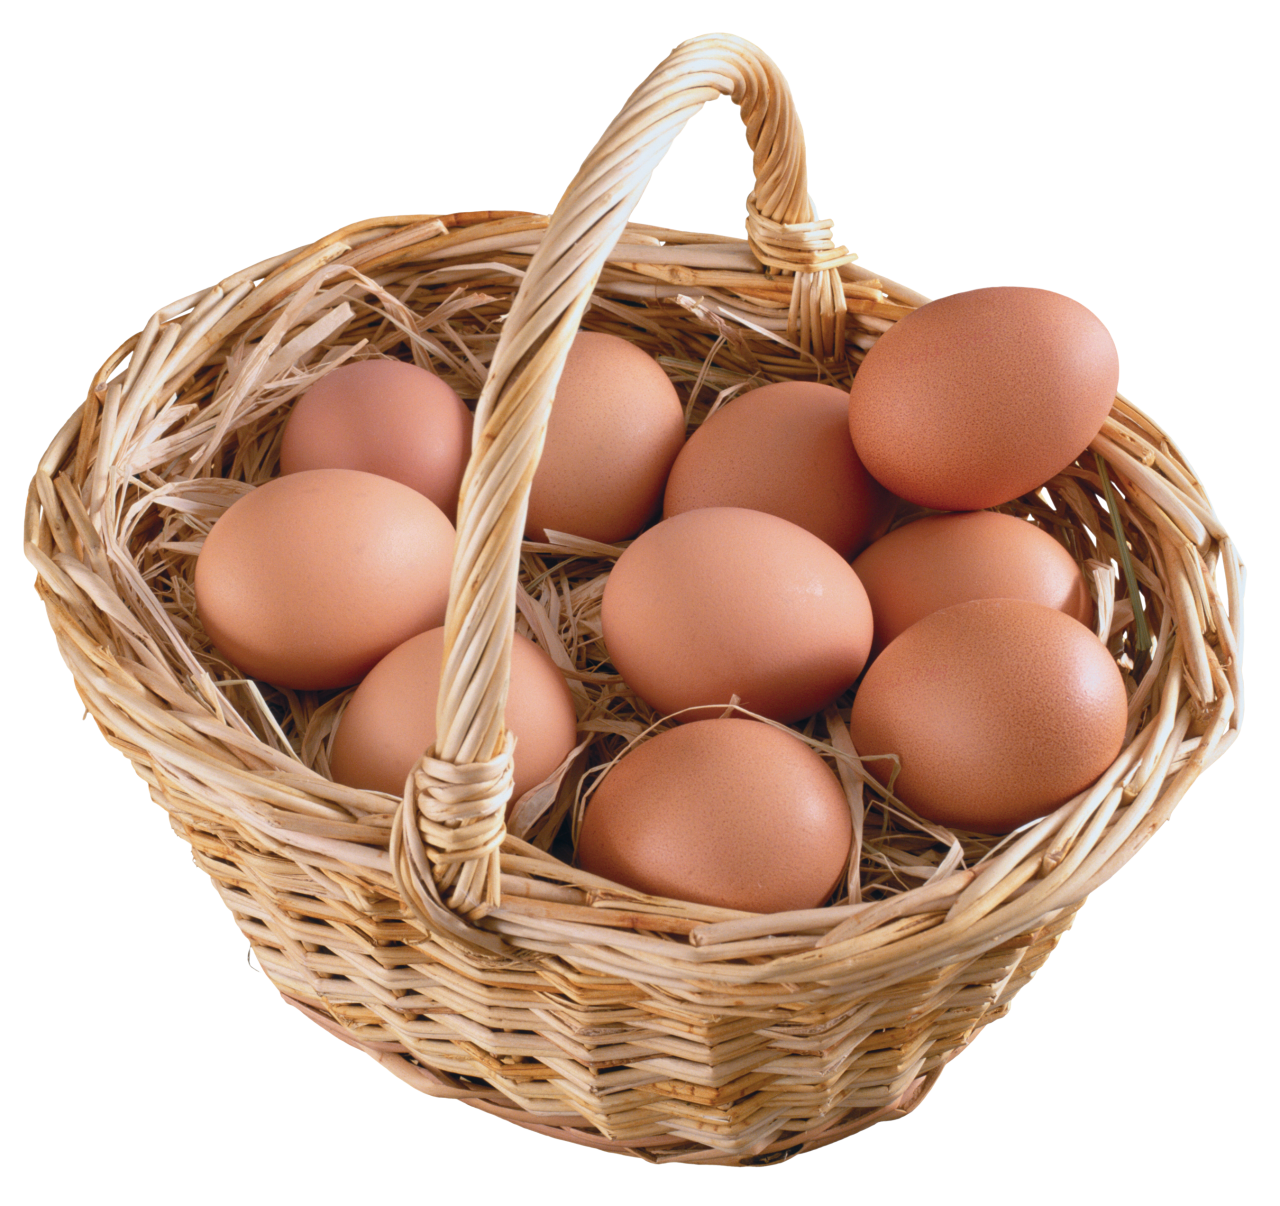 Basket  Full of eggs PNG Image